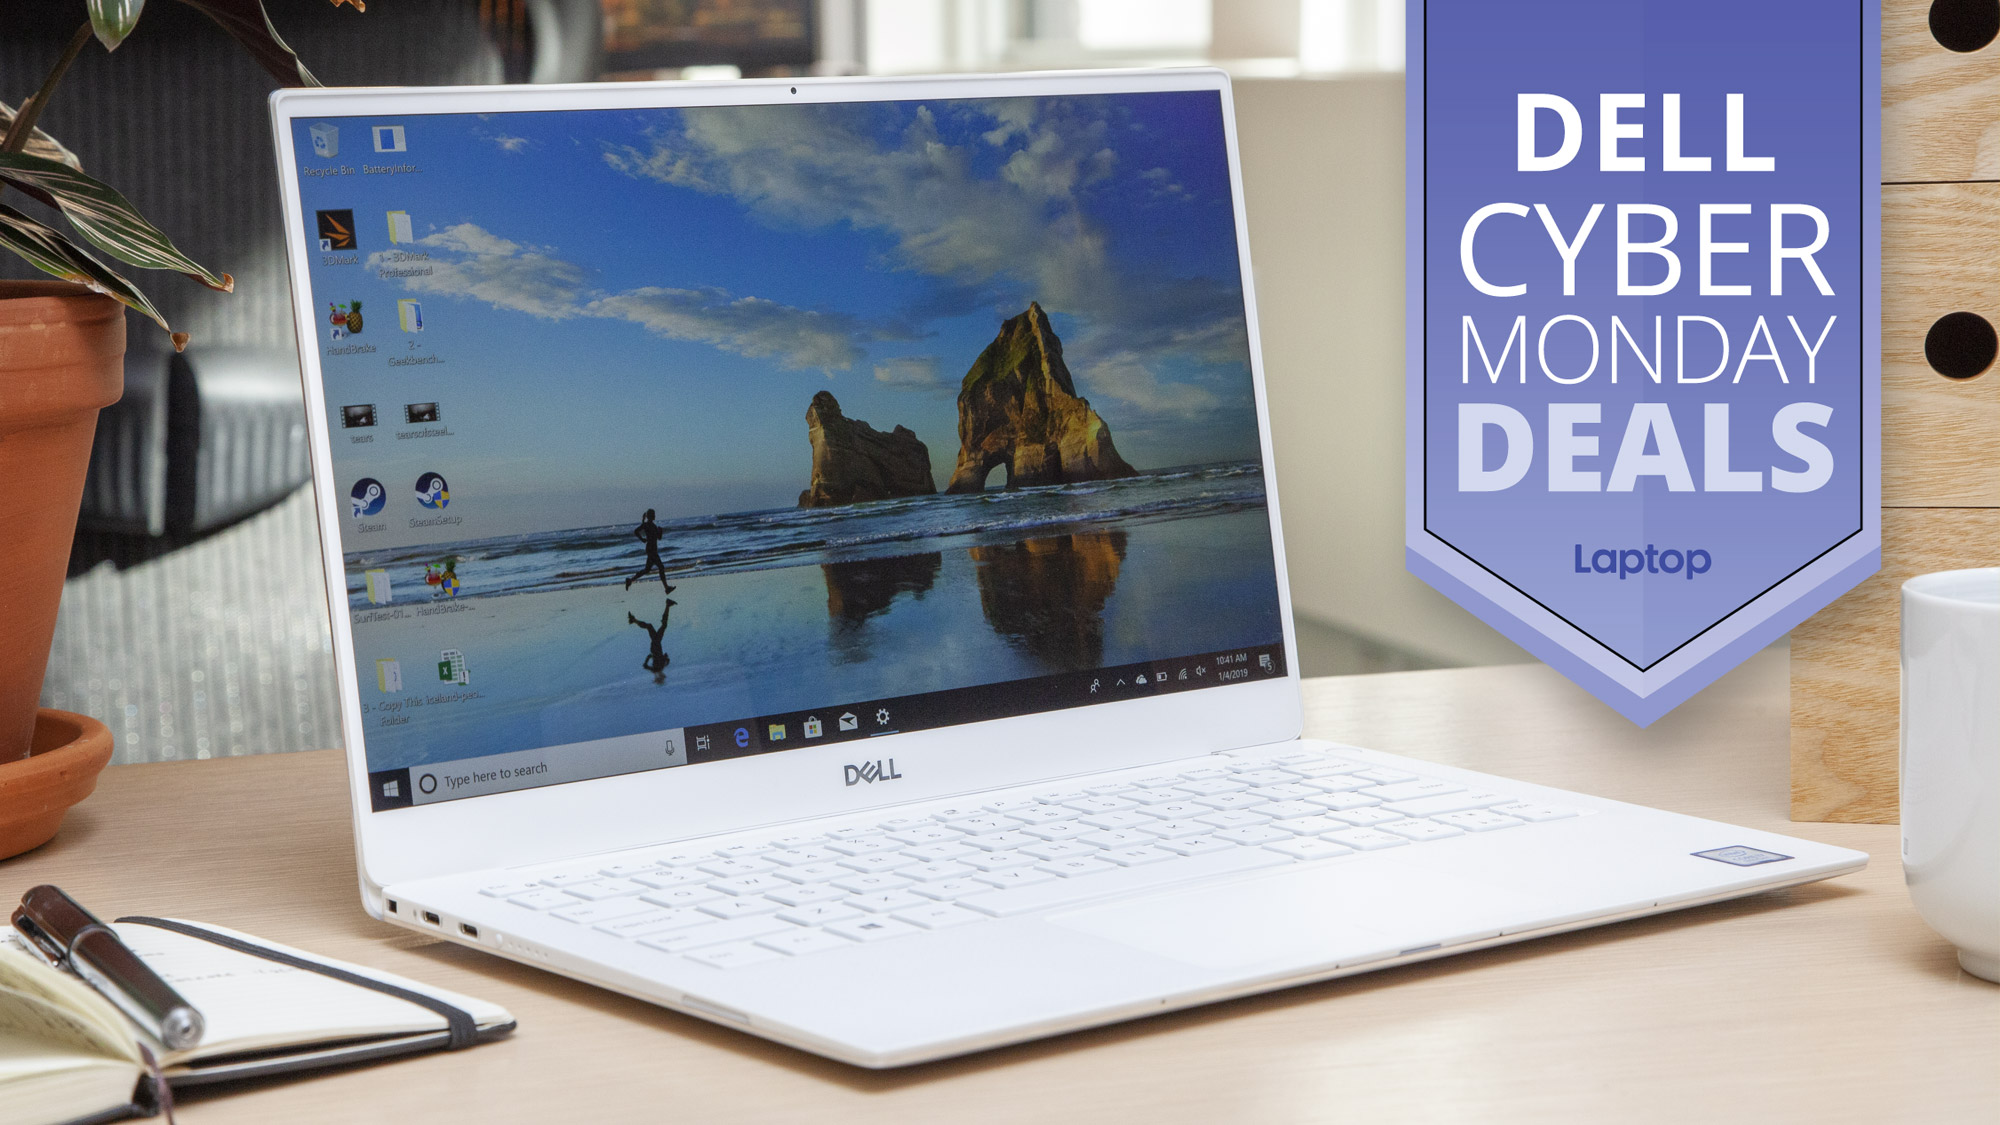 Best Dell Cyber Monday Deals In 2019 Laptop Mag